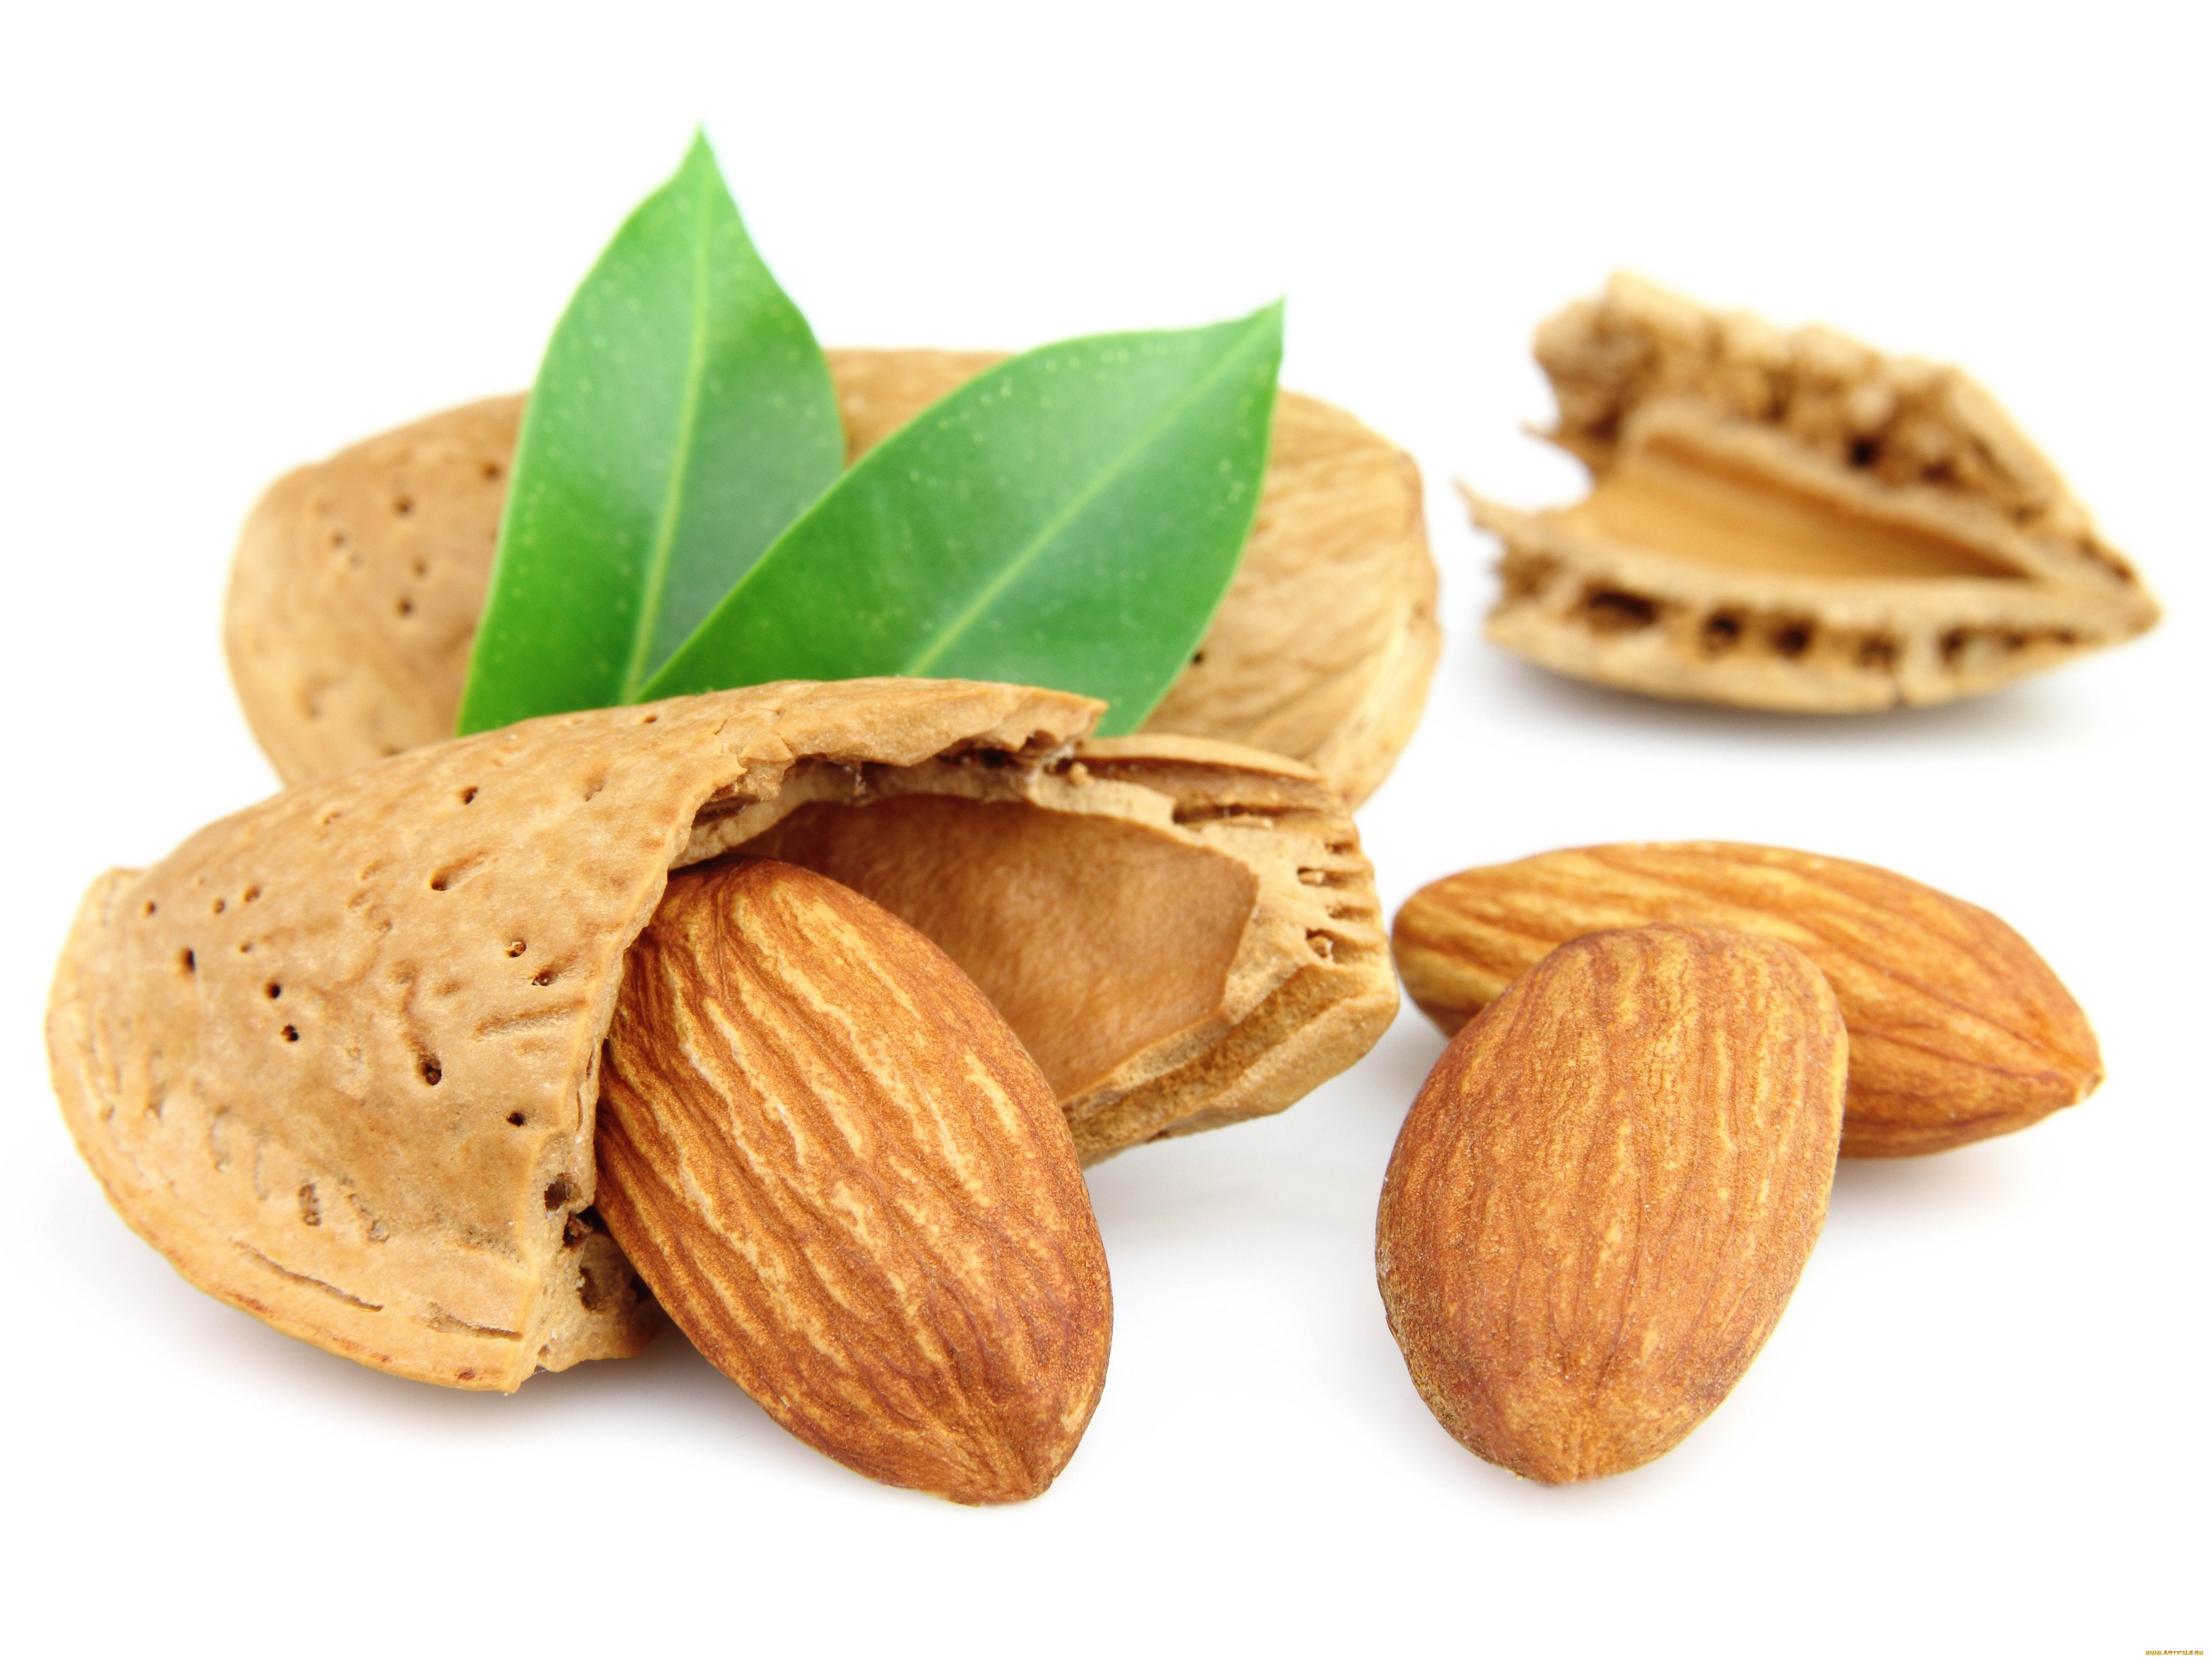 5000x3750 > Almond Wallpapers